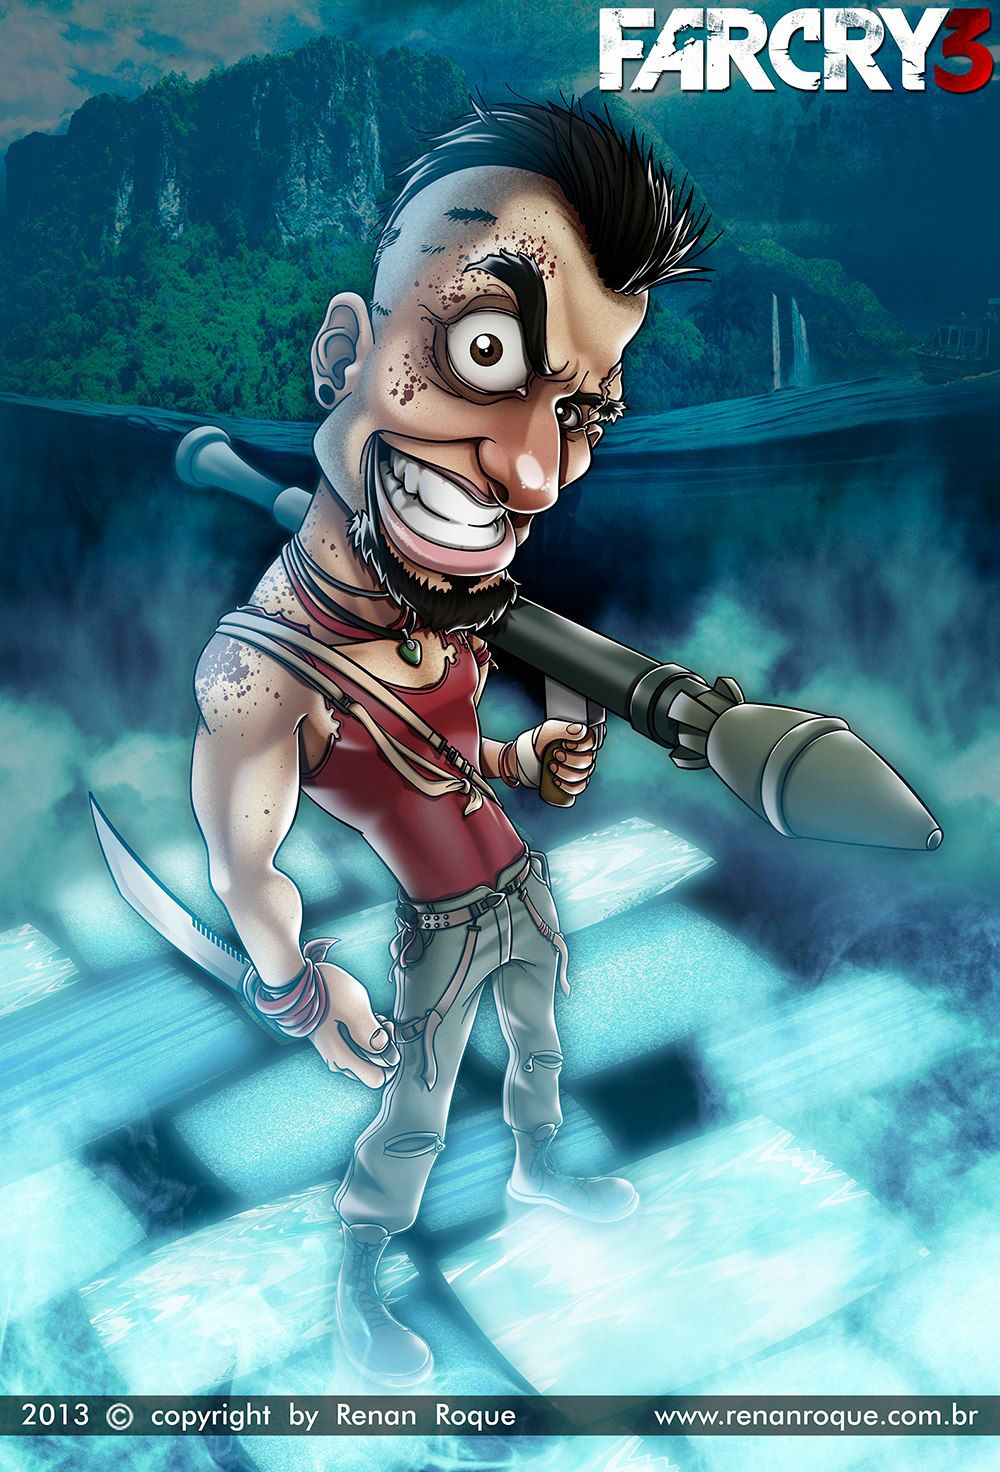 Pin By Kurt Henschen On Far Cry 3 Savage Culture Far Cry 3 I Am Game